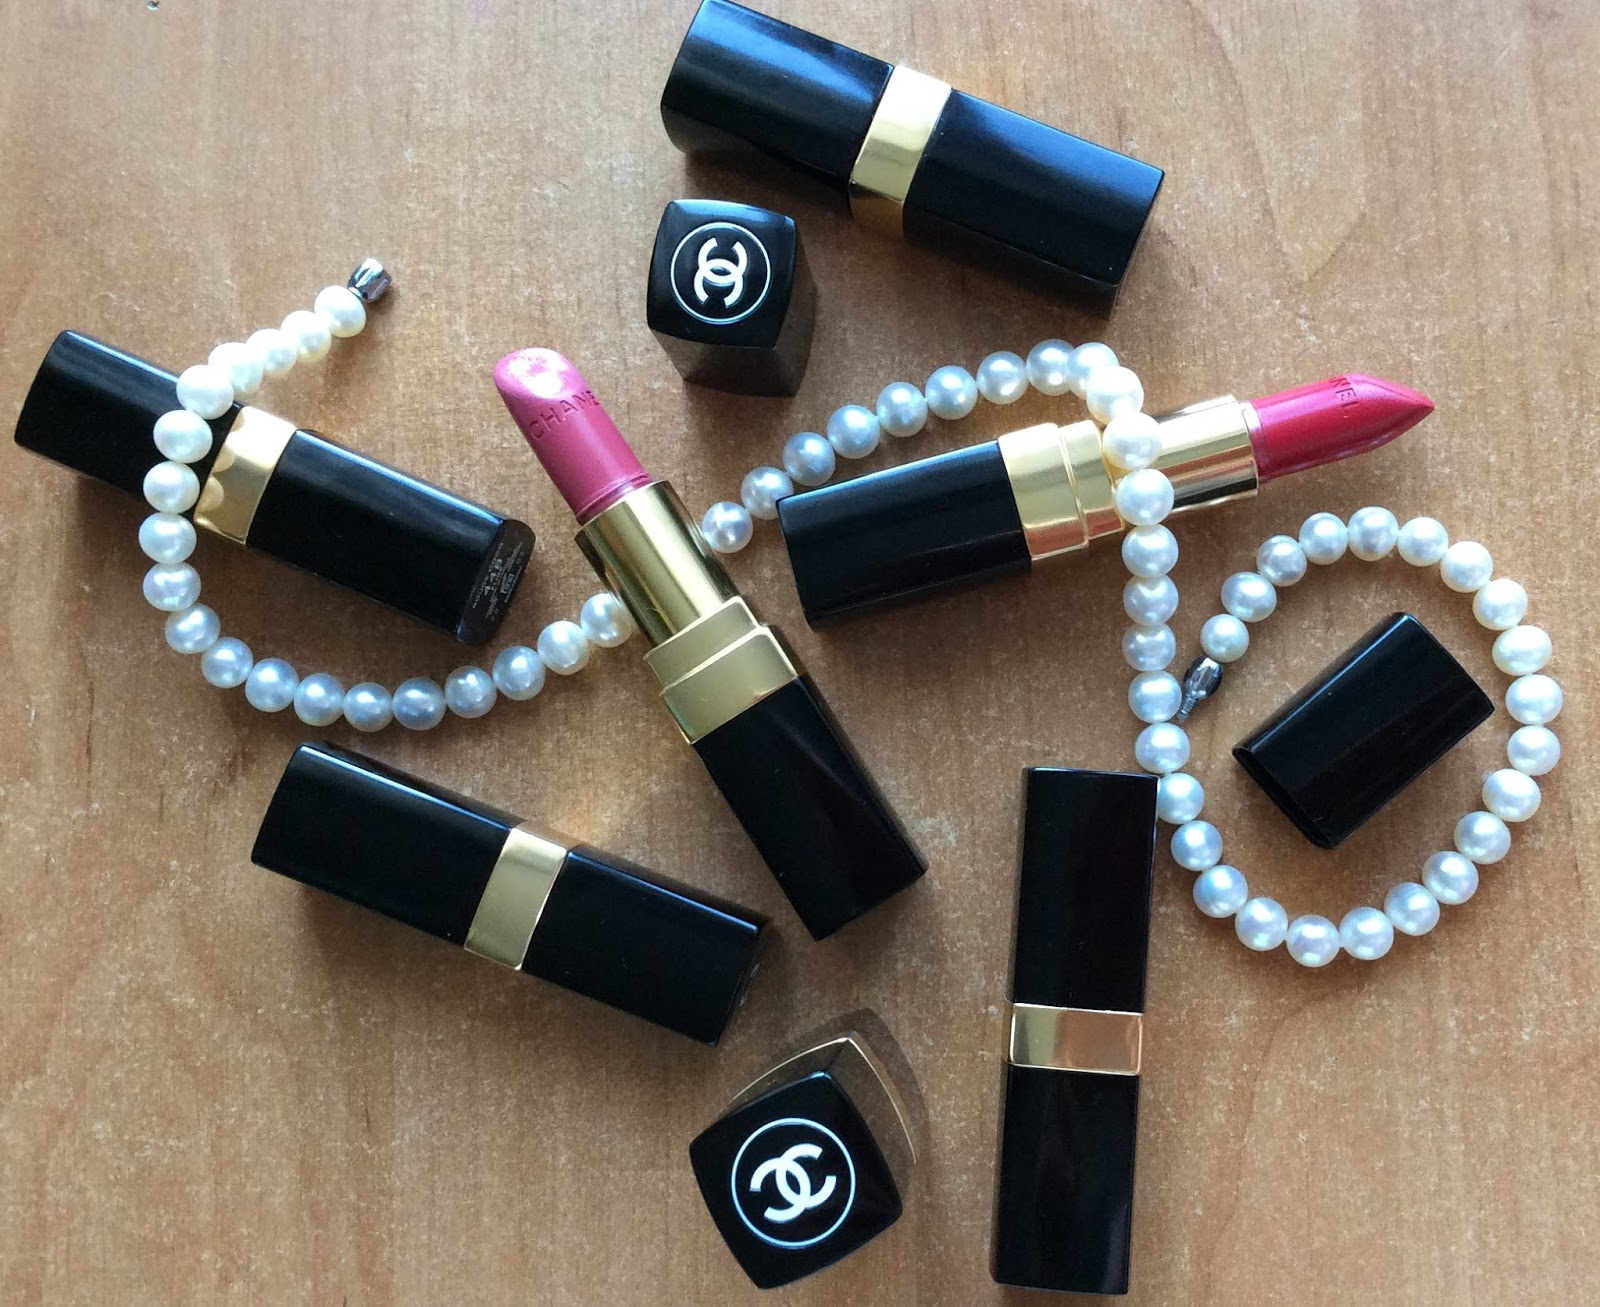 Beauty marker chanel rouge coco lipsticks review and swatches - Chanel Rouge Coco Lipsticks Review And Swatches